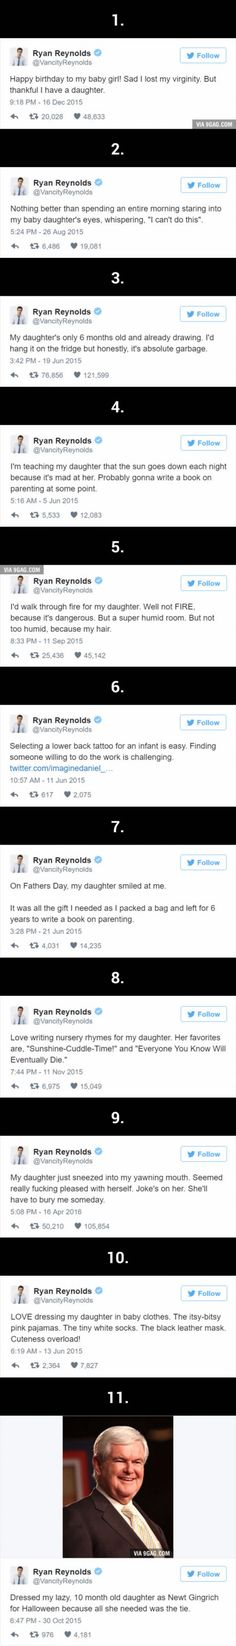 Ryan Reynolds' Hilariously Honest Tweets About His Daughter Are Even Better Than Deadpool